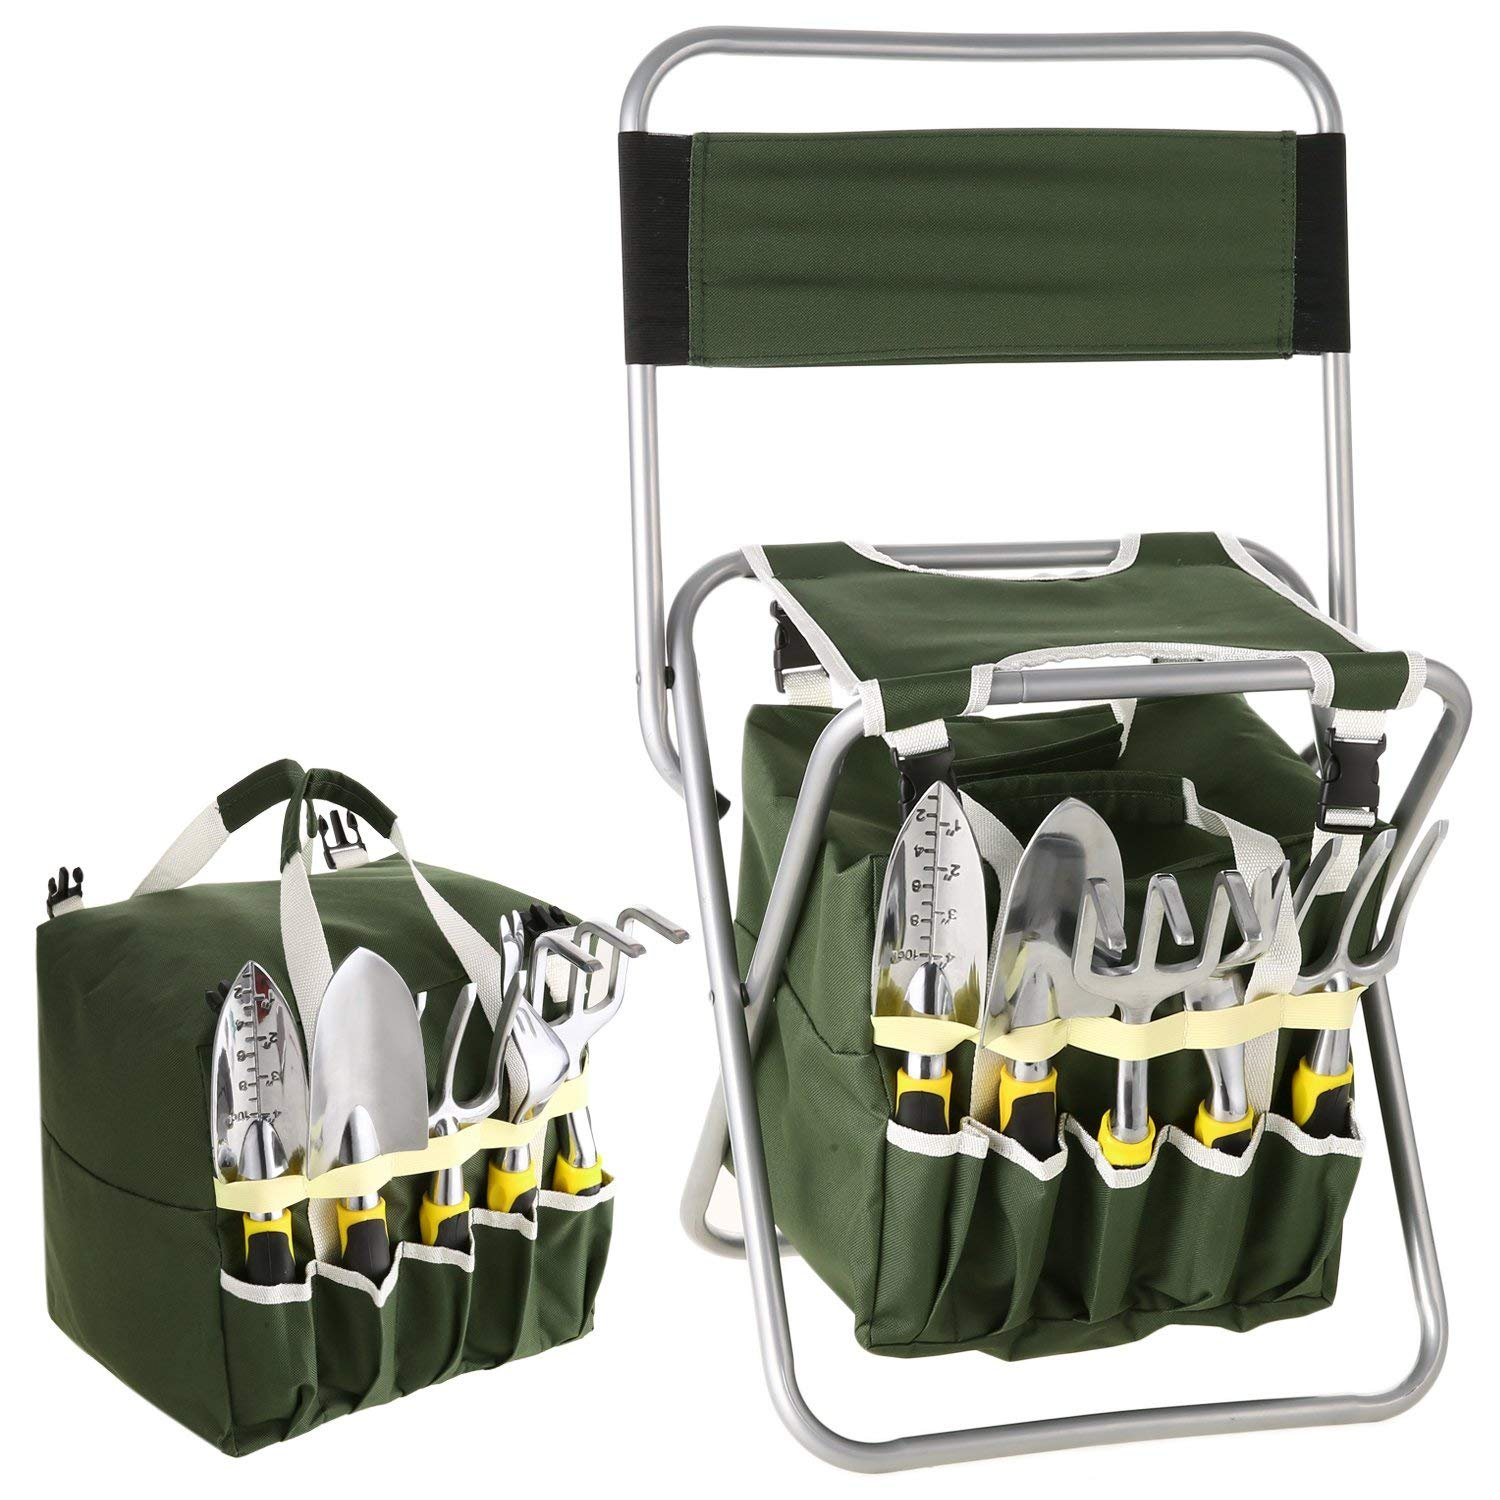 Bluefringe Garden Tool Set- 10 Piece Aluminum Hand Tool Kit, with Garden Folding Stool Seat,All-In-One Tool Bag,Outdoor Tool,Heavy Duty Gardening Work Set with Ergonomic Handle